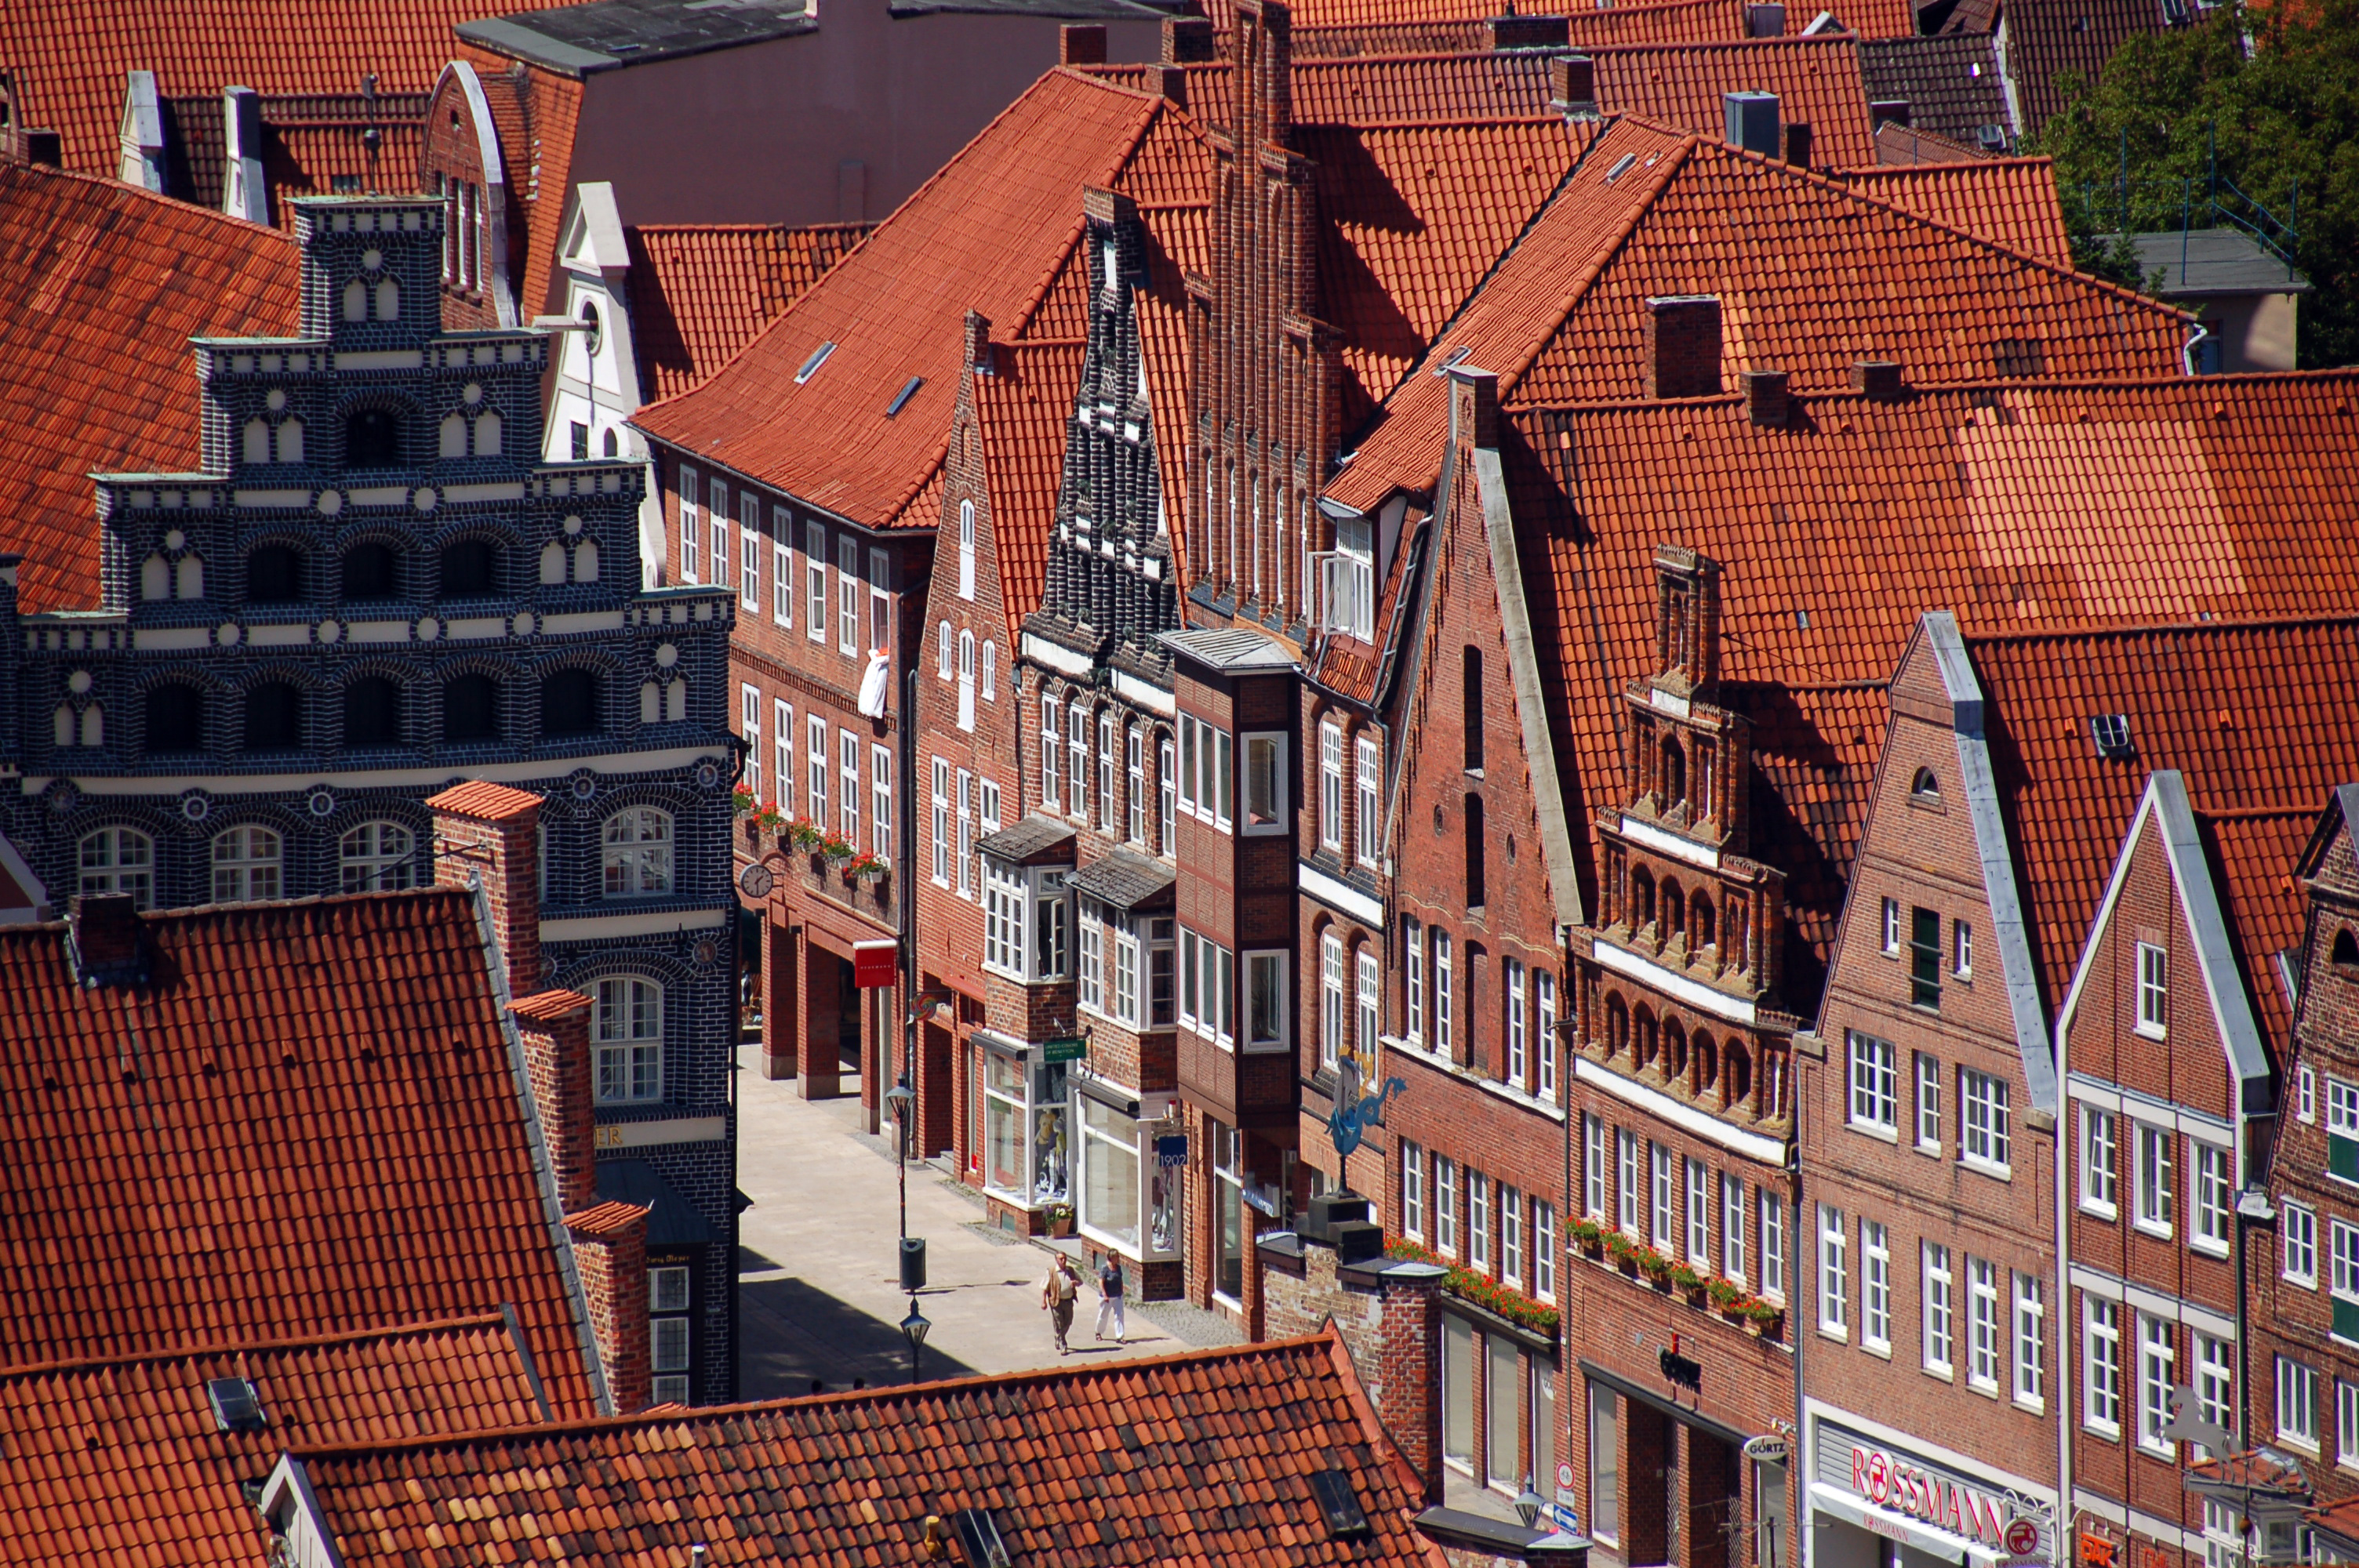 lueneburg dating site Mecklenburg-vorpommern was the site of the 33rd g8 summit in 2007, due to its lengthy name, the state is often abbreviated as mv or shortened to meckpomm in english, it is translated as mecklenburg-western pomerania or literally mecklenburg-cispomerania.